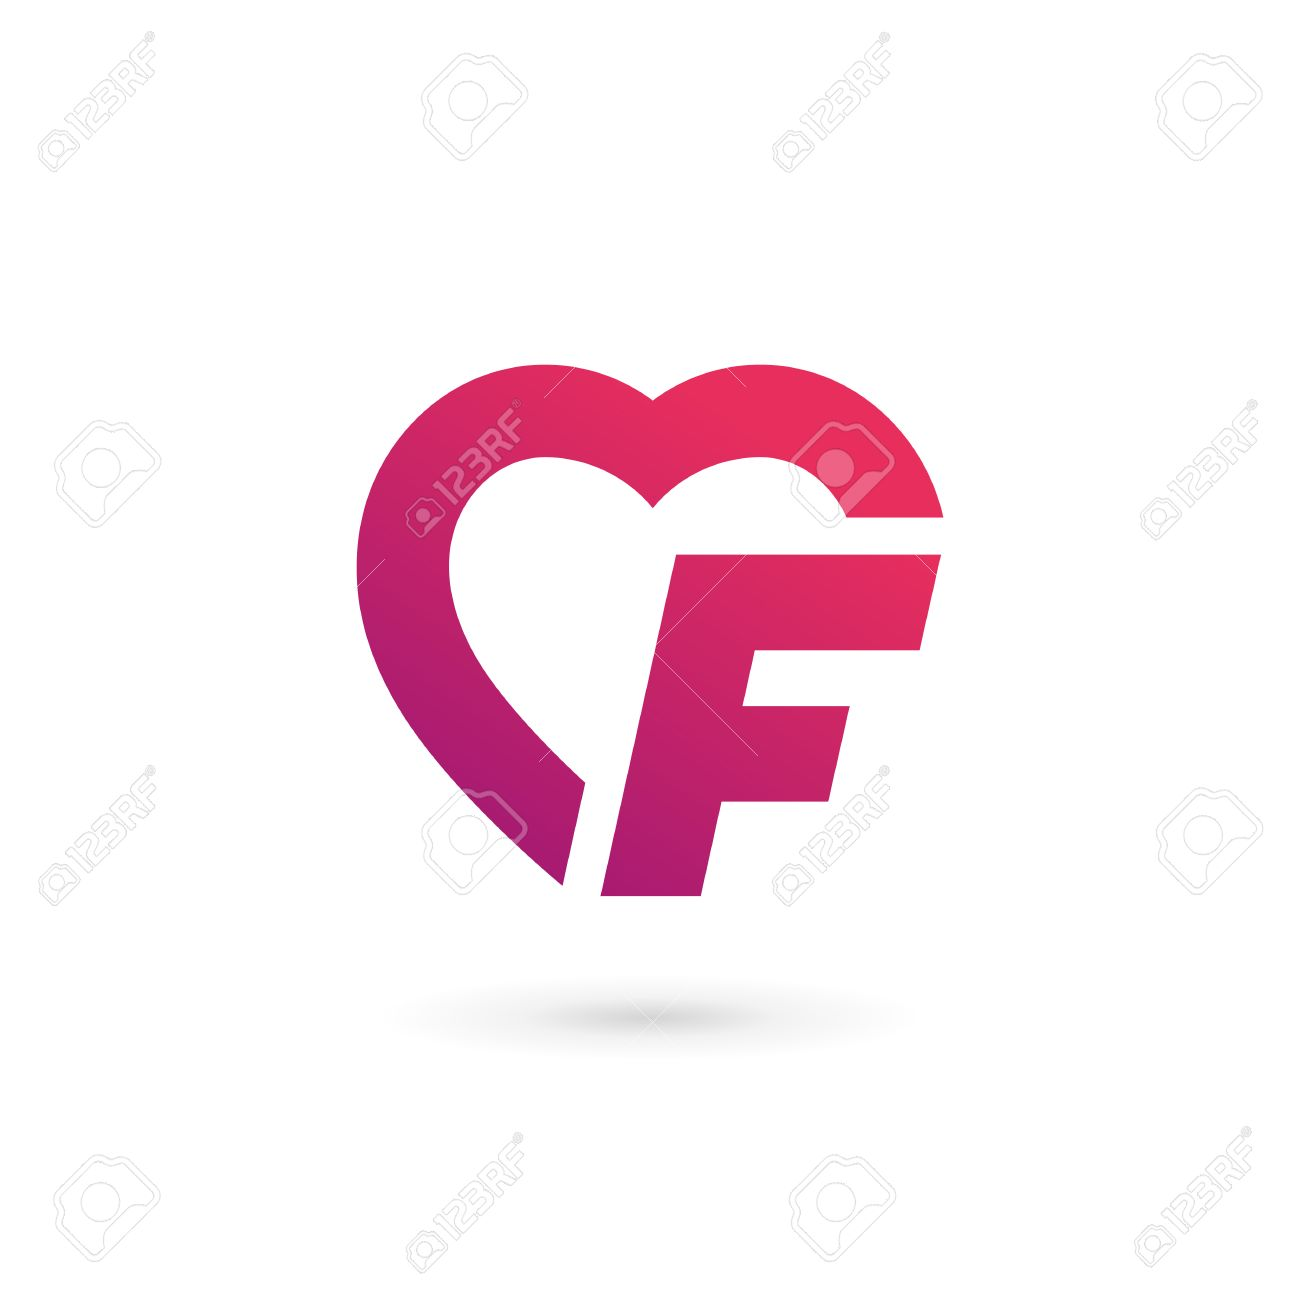 Letter f heart logo icon design template elements royalty free letter f heart logo icon design template elements stock vector 59648242 thecheapjerseys Image collections